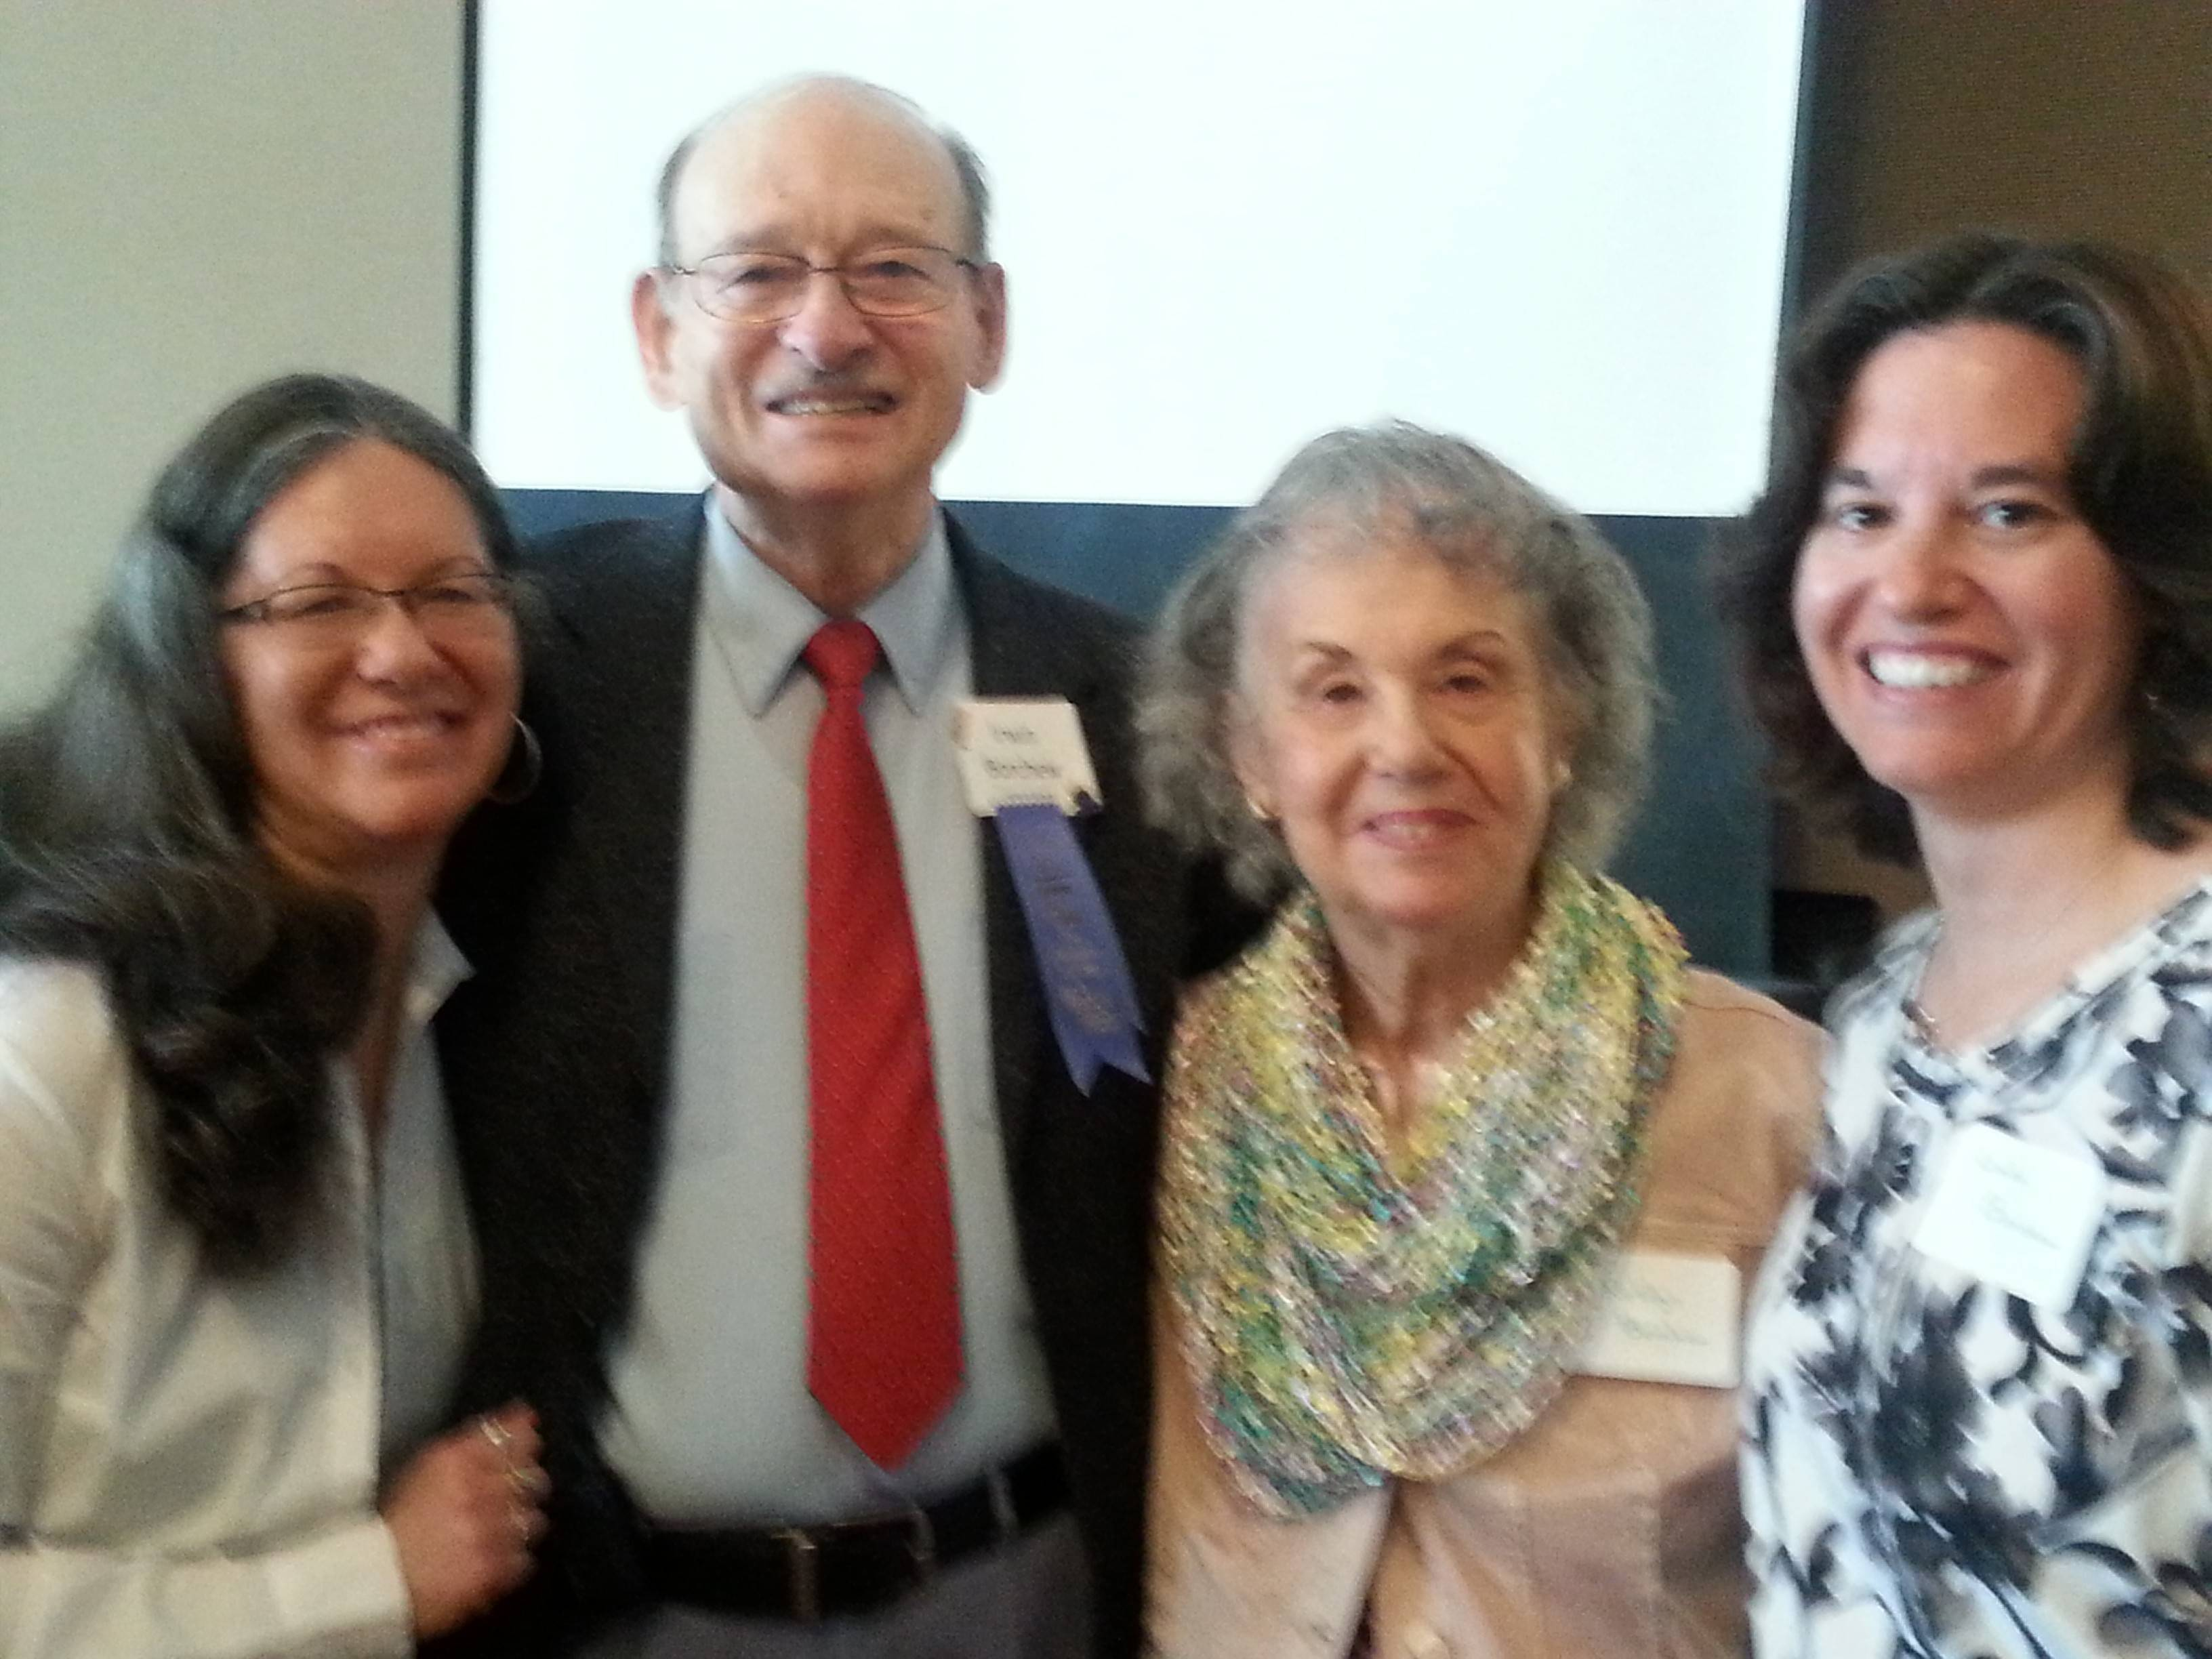 Award winner Irwin Borchew with his family, from left, daughter Gail Schuck, wife Roslyn Borchew and daughter Linda Borchew.